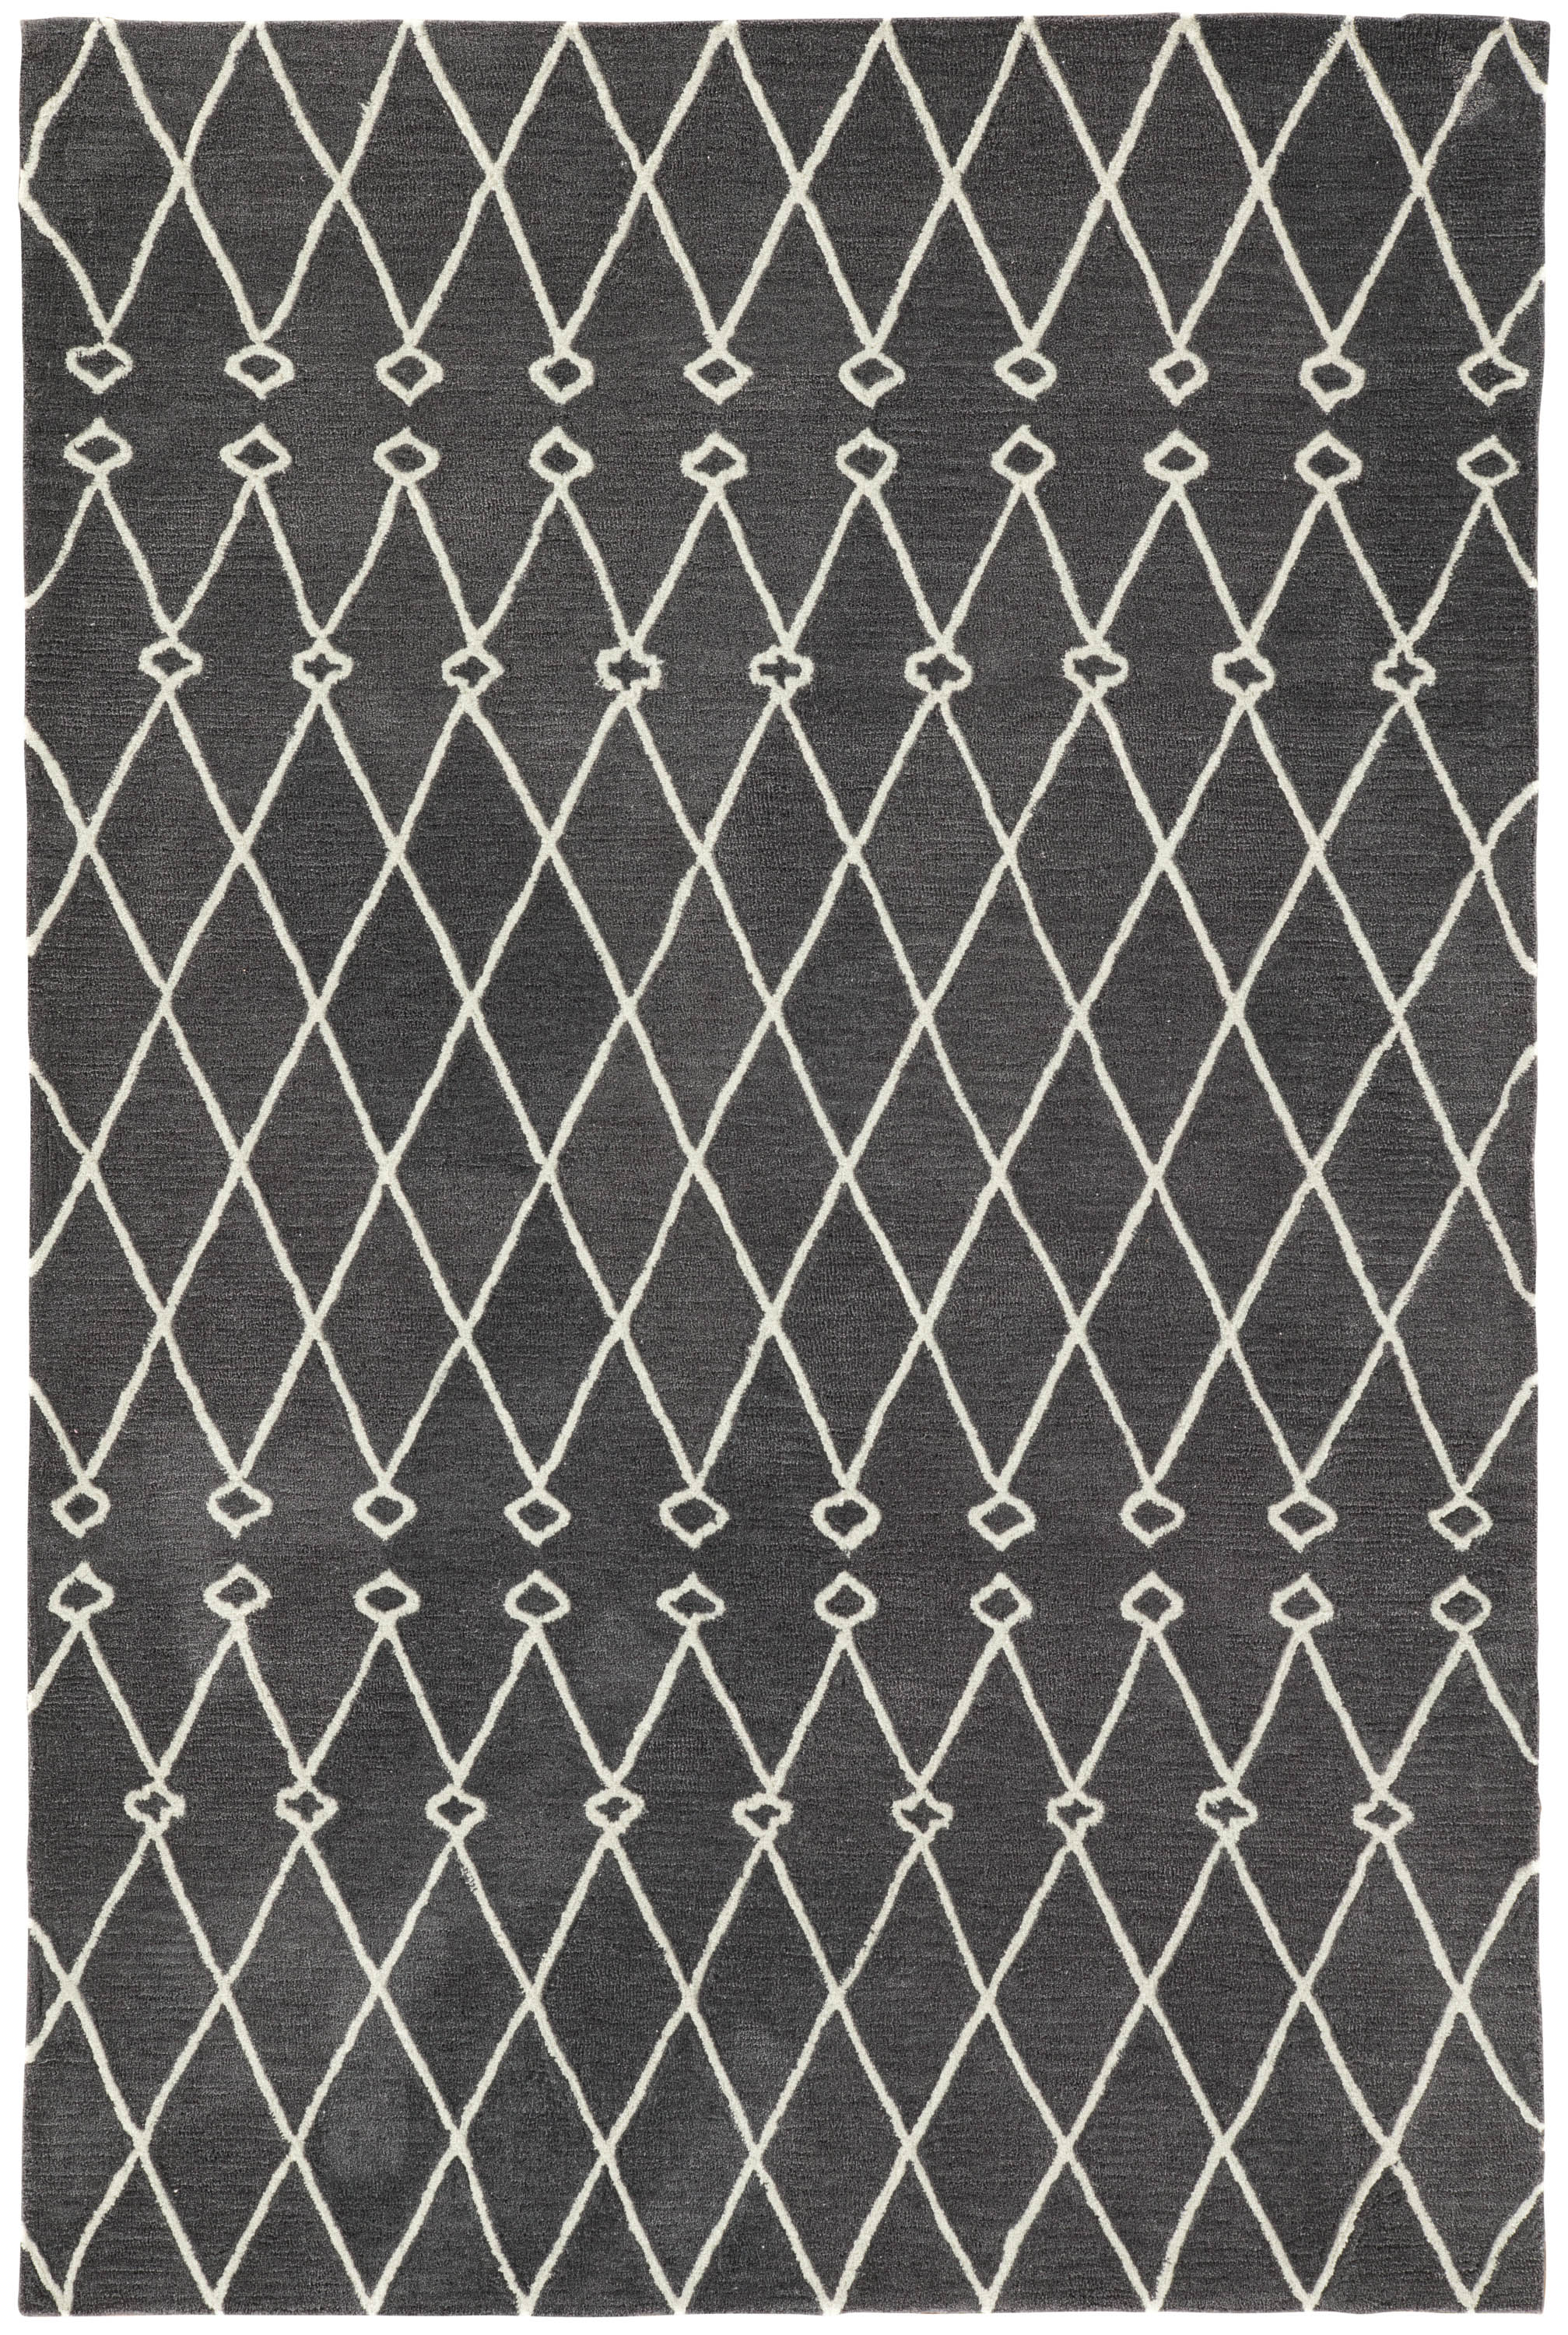 Rectangle Darkgray Trellis Hand Tufted Synthetics Persian & Moroccan recommended for Bedroom, Bathroom, Dining Room, Office, Hallway, Living Room